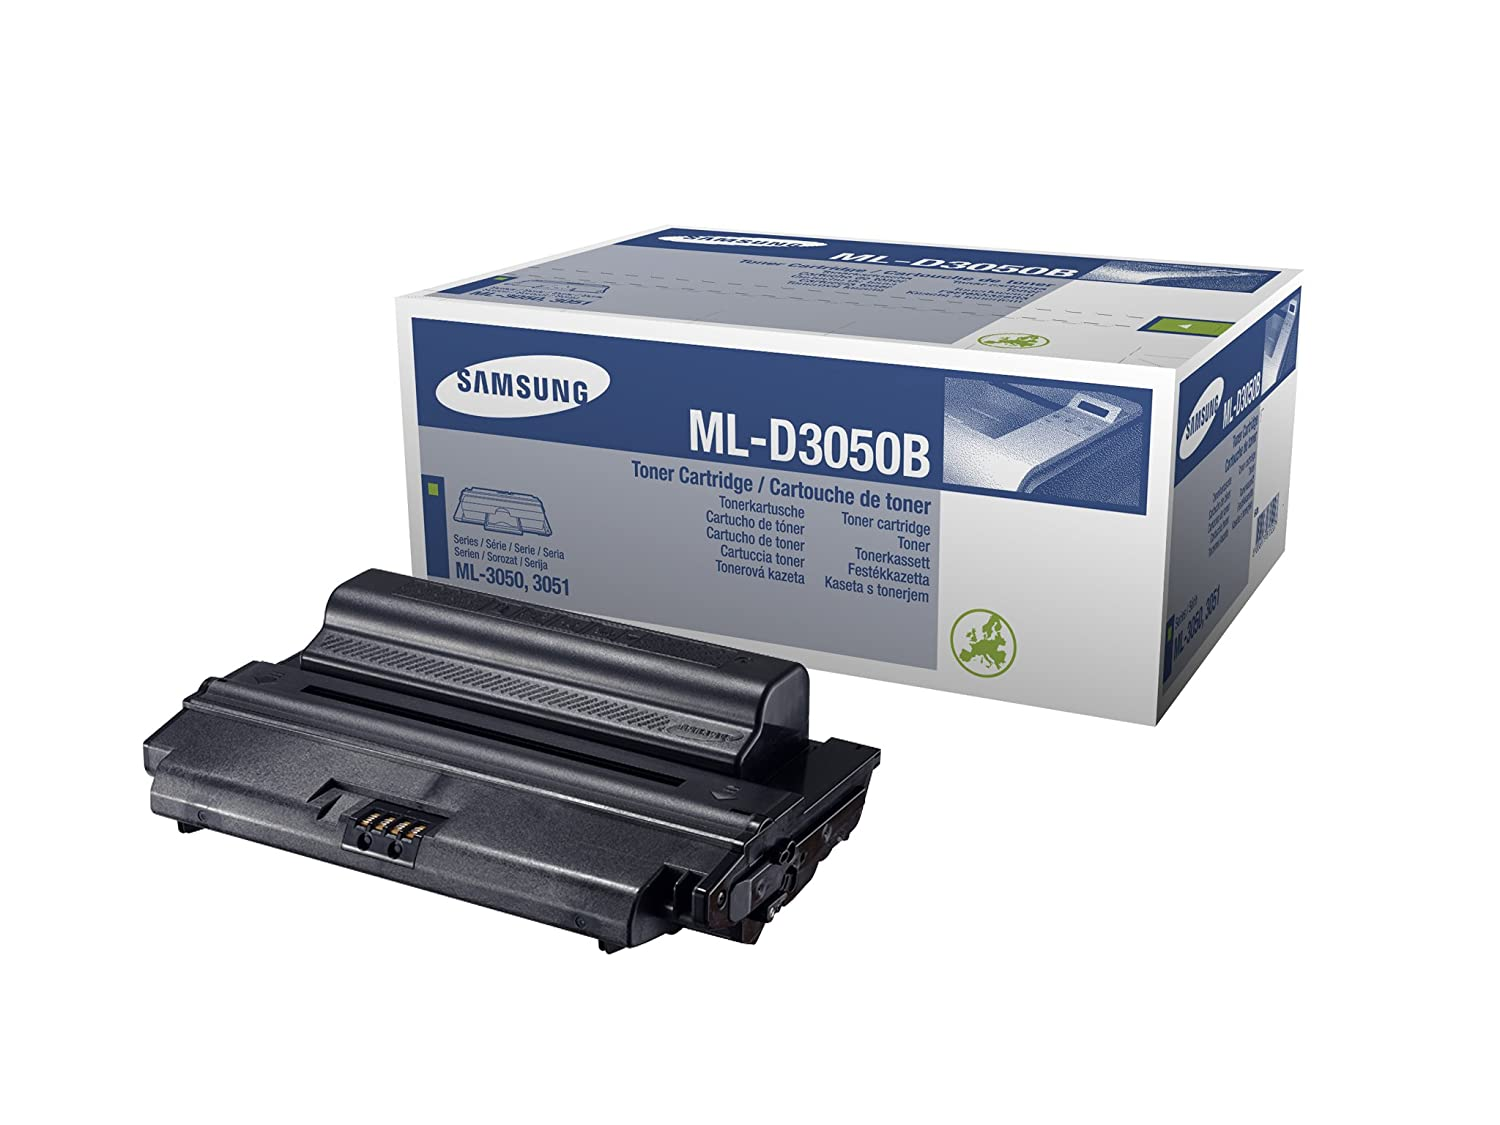 SAMSUNG ML-3050 DRIVER DOWNLOAD FREE